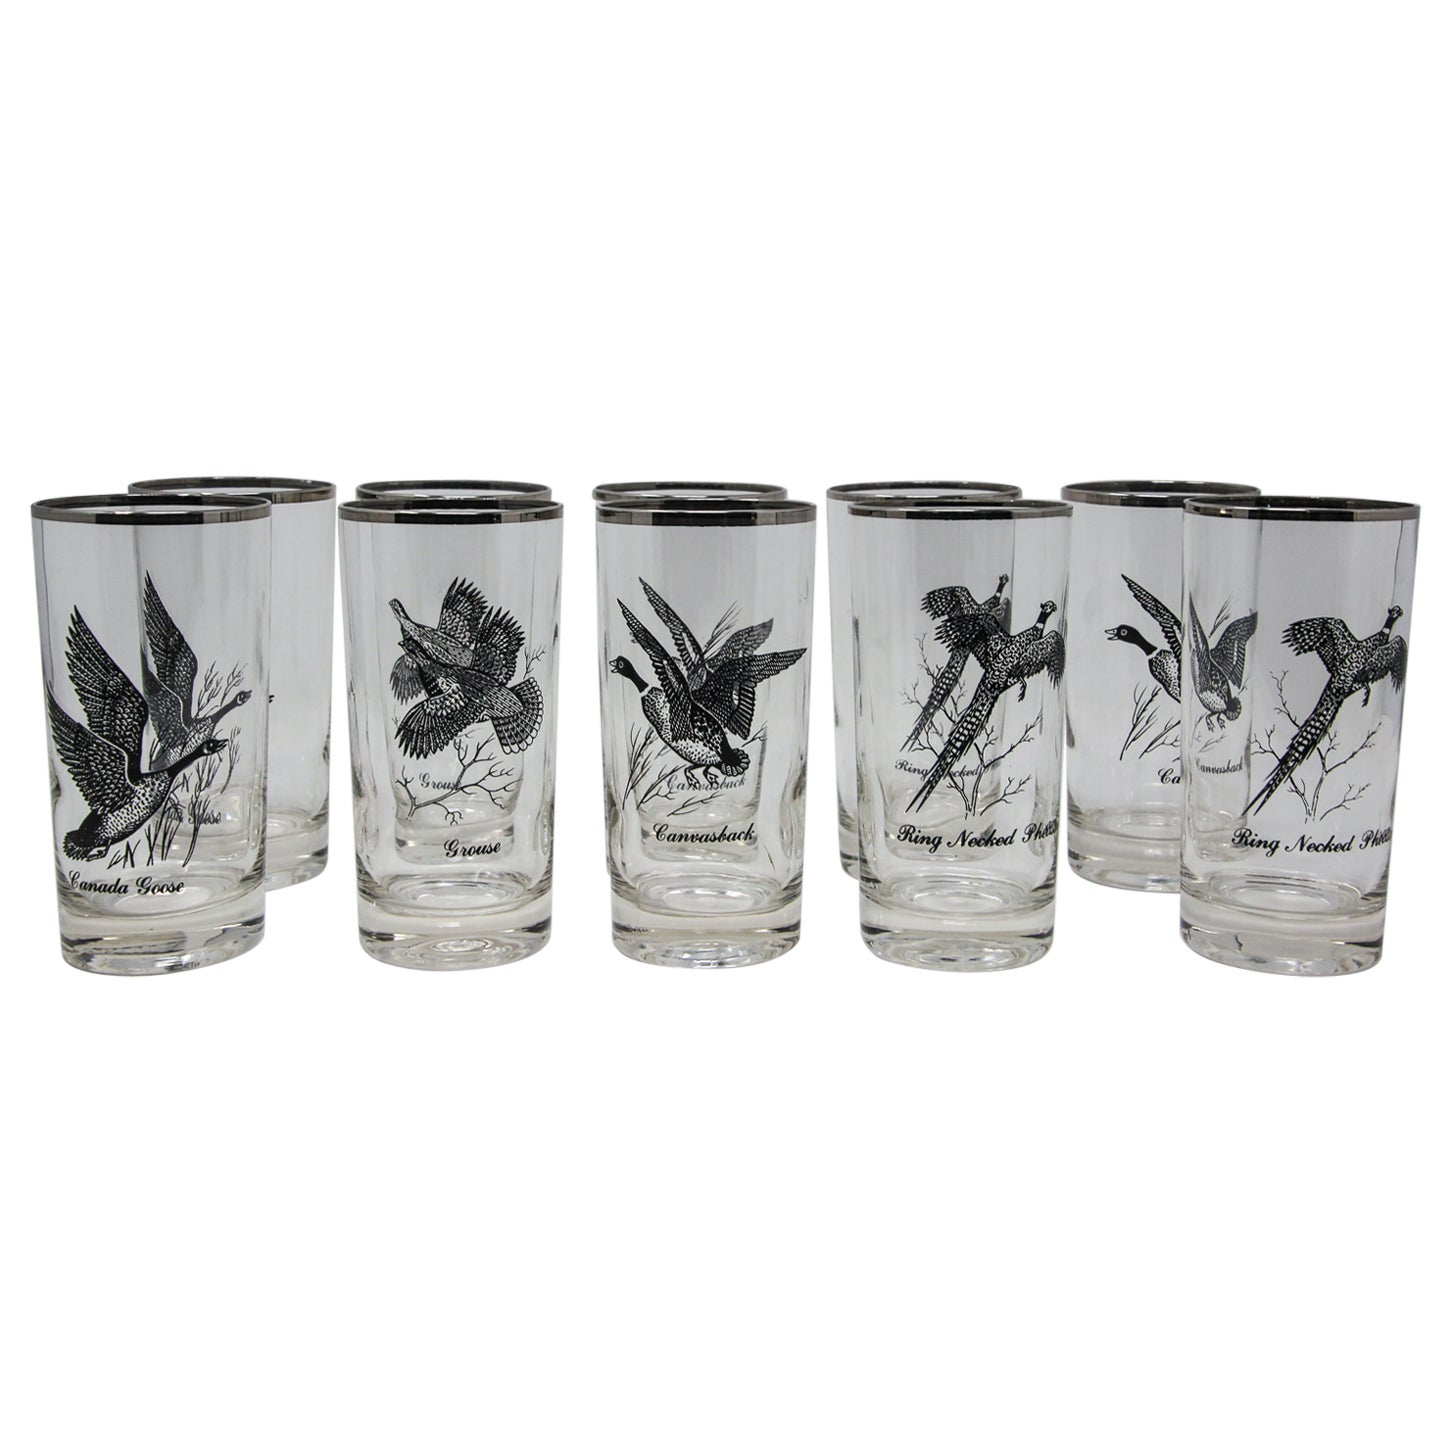 Vintage Set of 10 Highball Drinking Glasses with Silver Flying Ducks Pattern